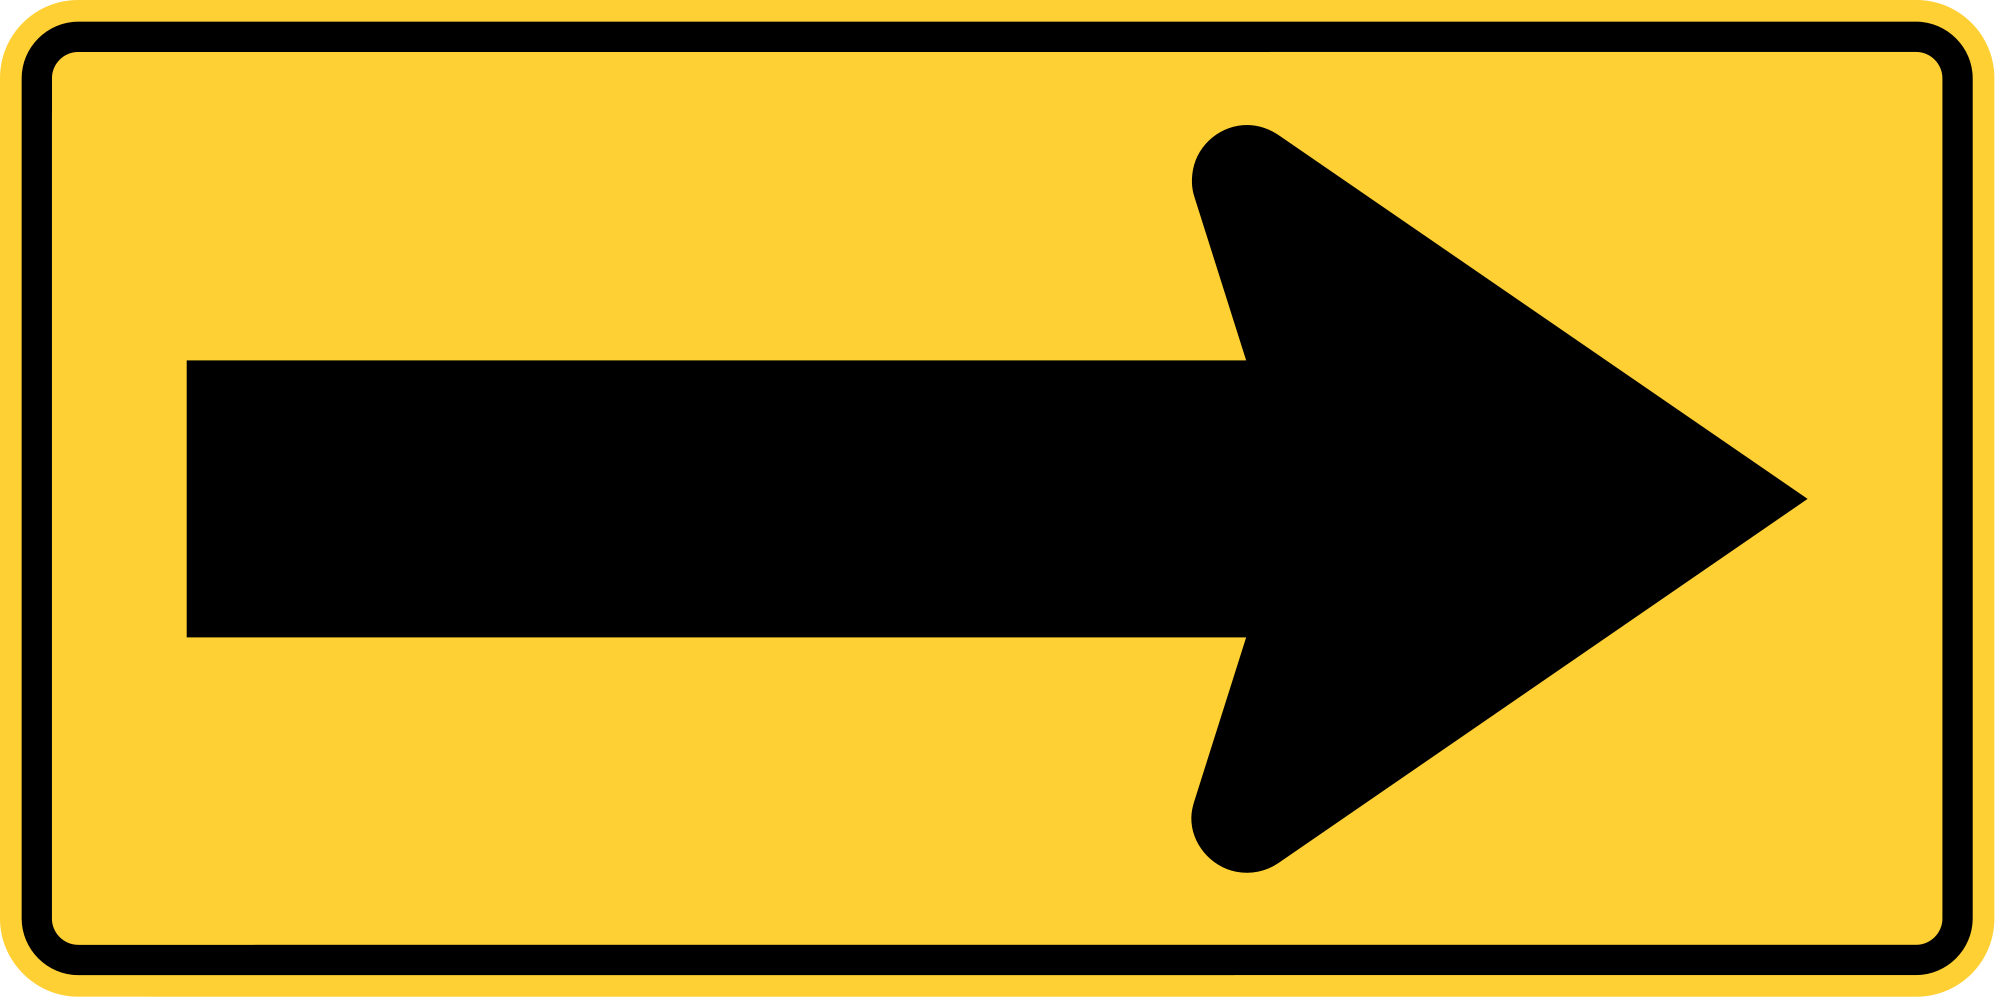 W1-6R One Direction Large Arrow Warning Sign